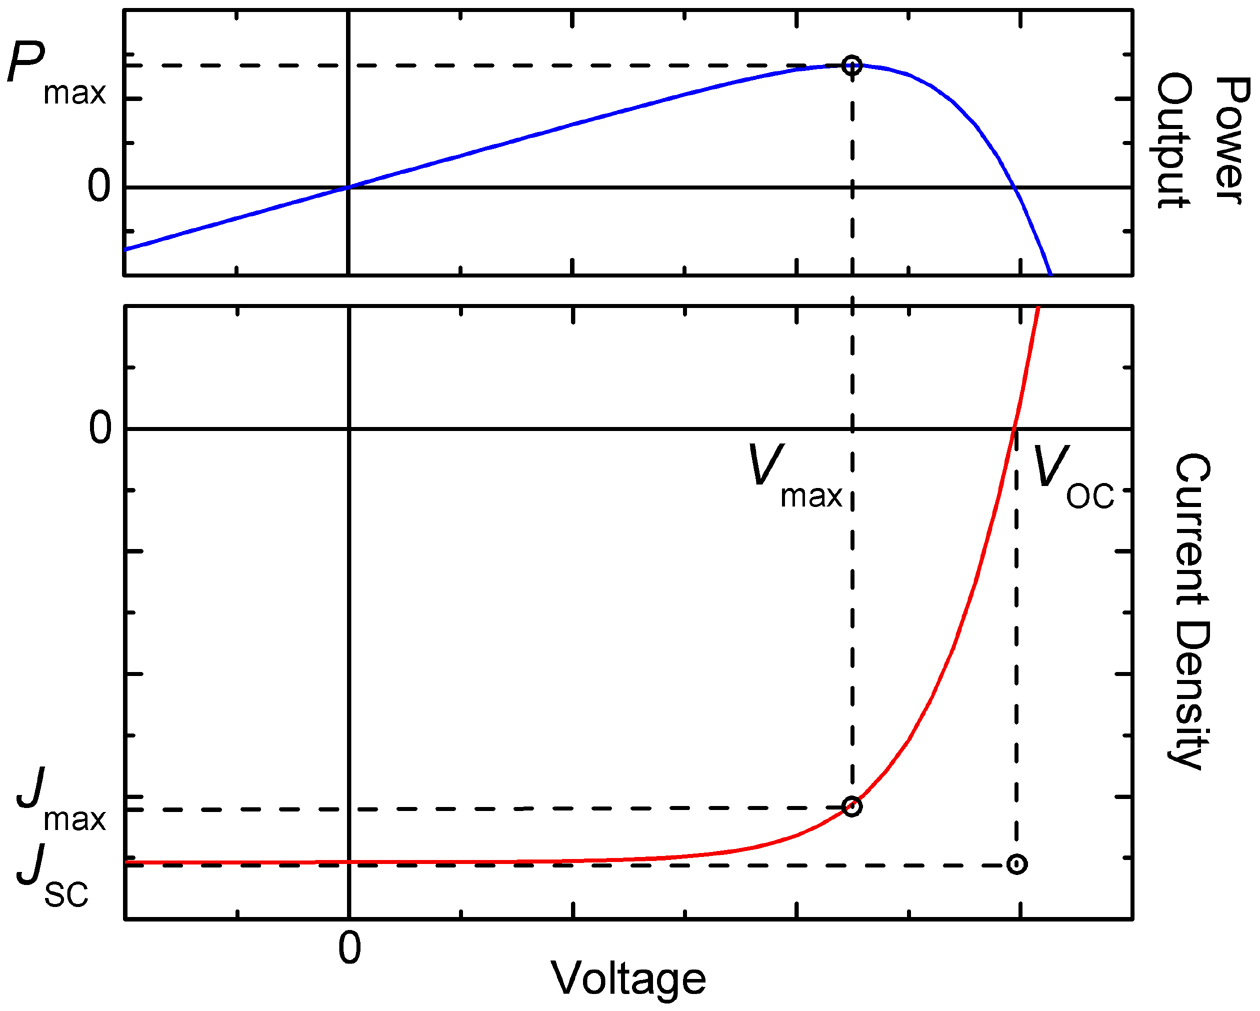 Evaluating The Power Conversion Values Of Organic Solar Cells Spie Cell Parallel Circuits Illustration Current Voltage Characteristic A And Corresponding Electrical Density Output Pmax Maximum